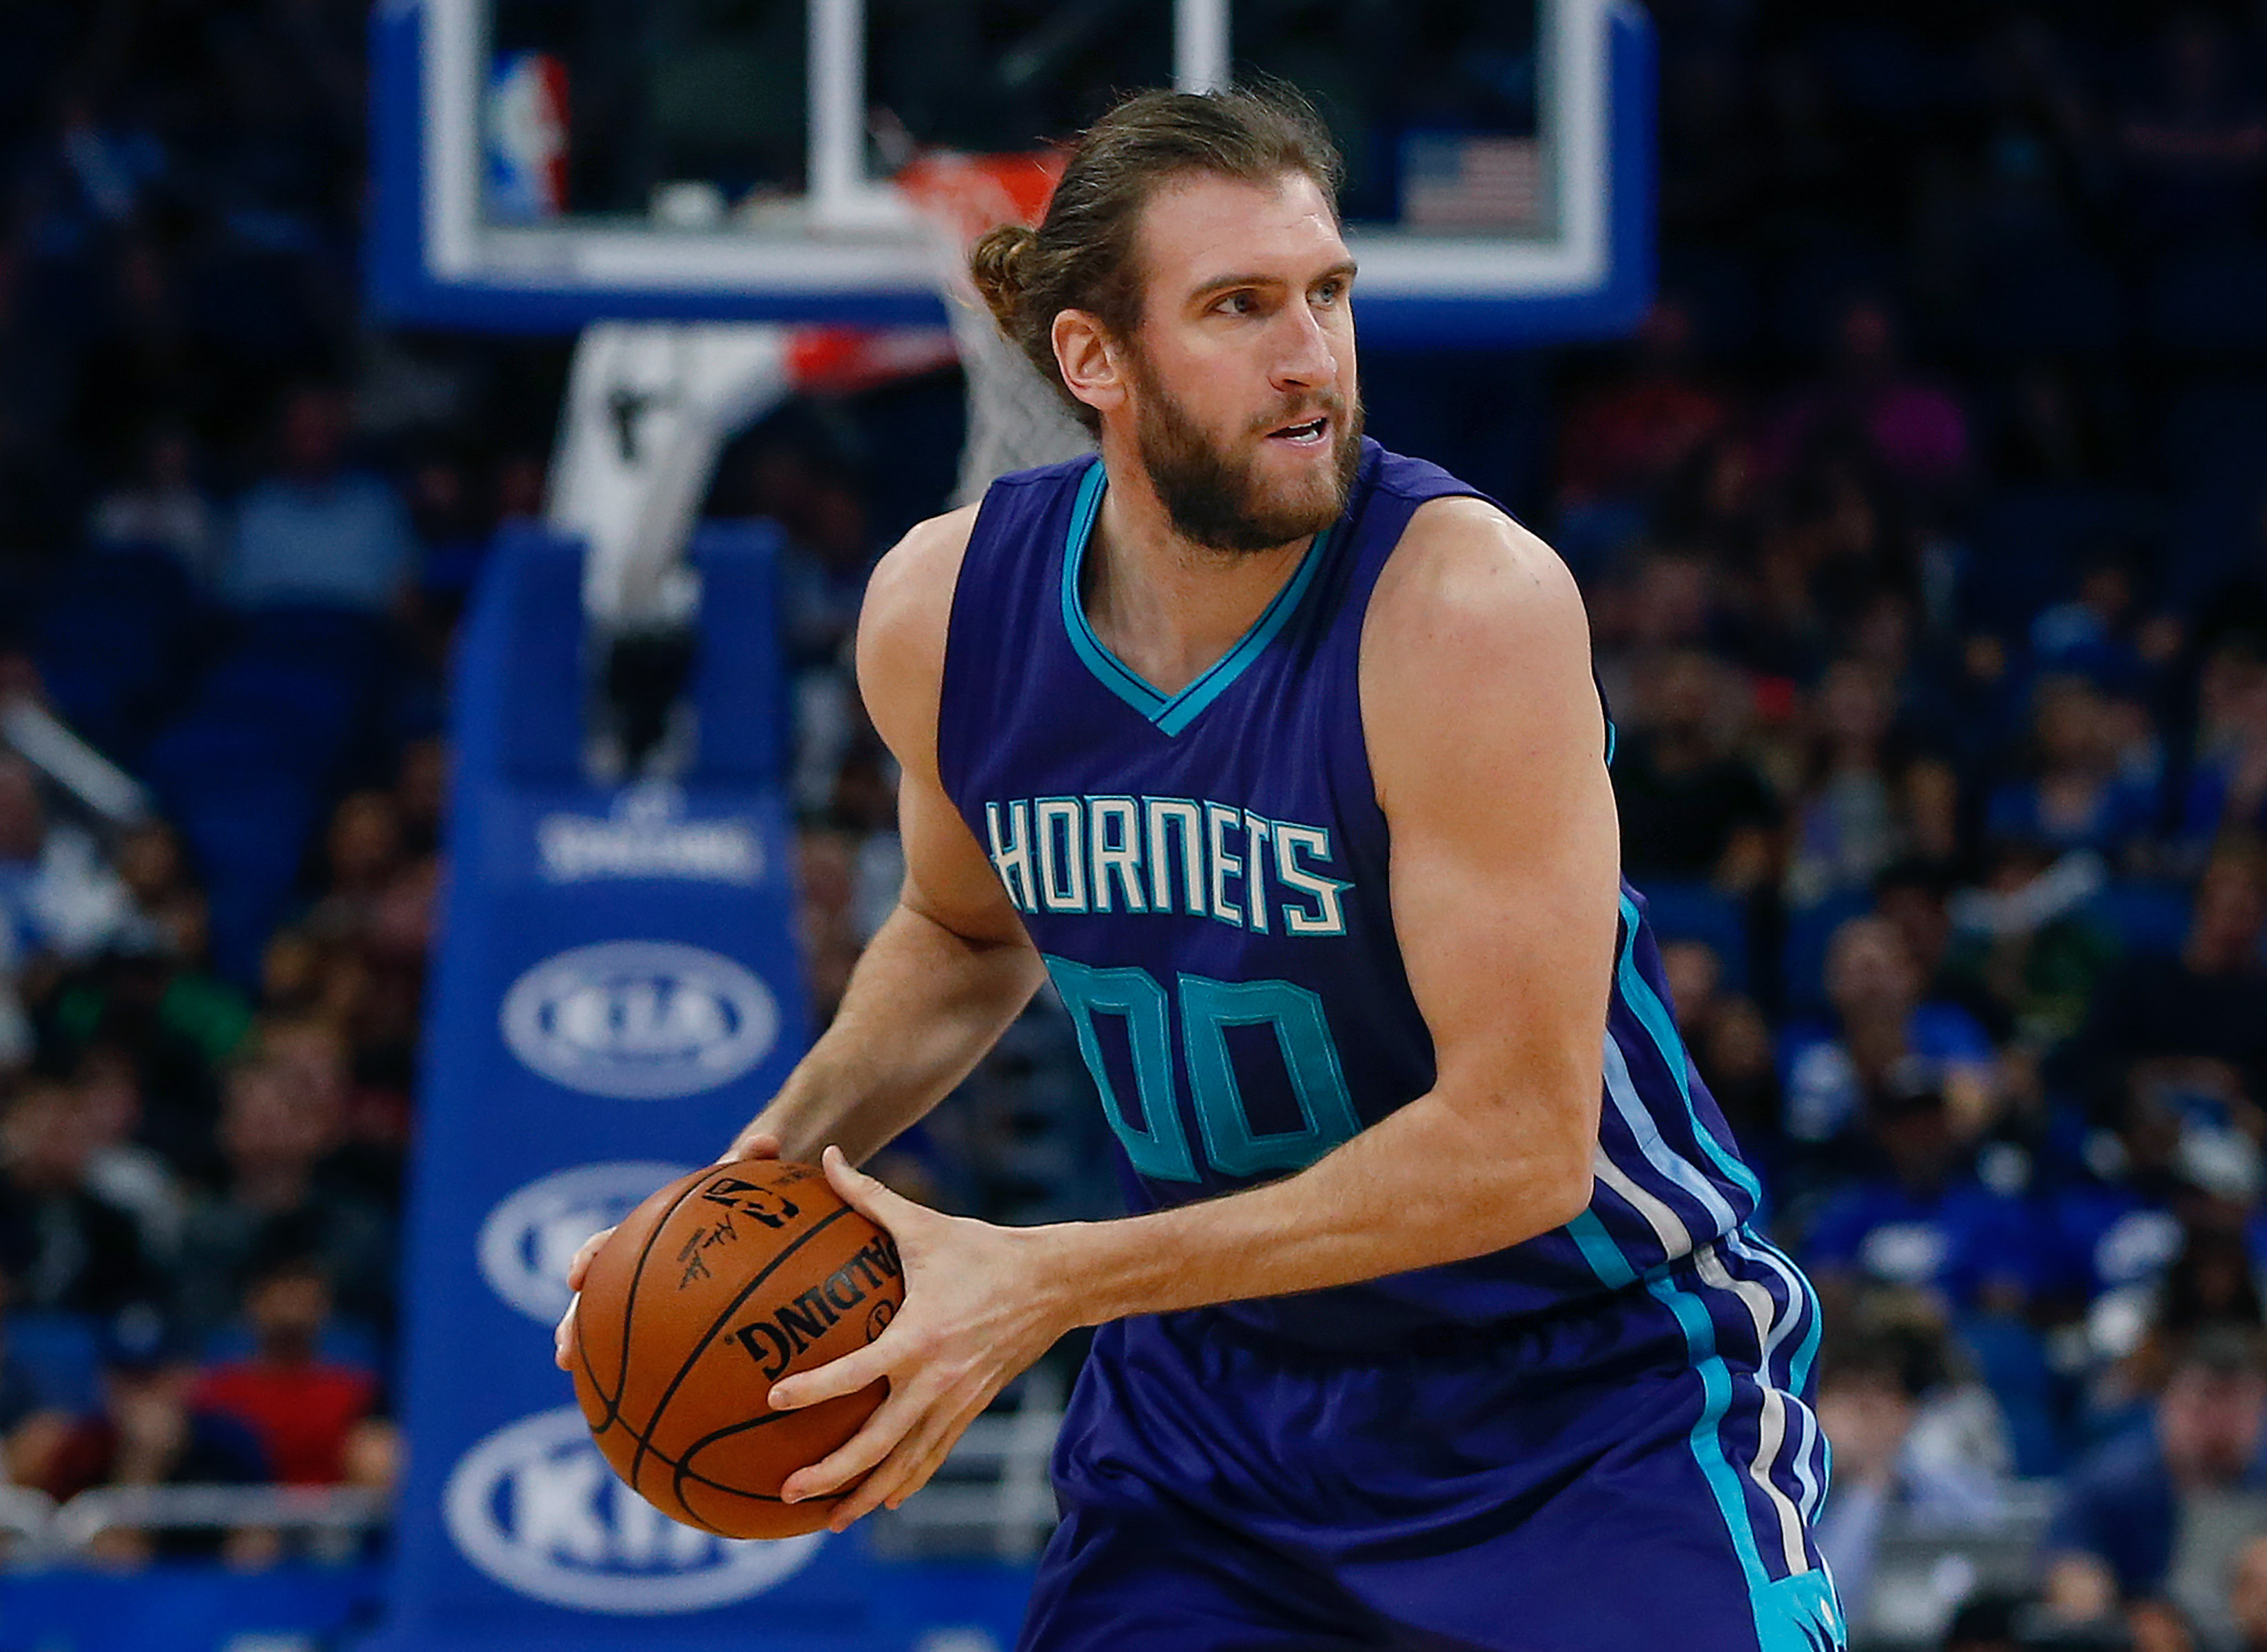 Dec 28, 2016; Orlando, FL, USA; Charlotte Hornets forward Spencer Hawes (00) protects the ball during the second half of an NBA basketball game Orlando Magic at Amway Center.The Hornets won 120-101. Mandatory Credit: Reinhold Matay-USA TODAY Sports